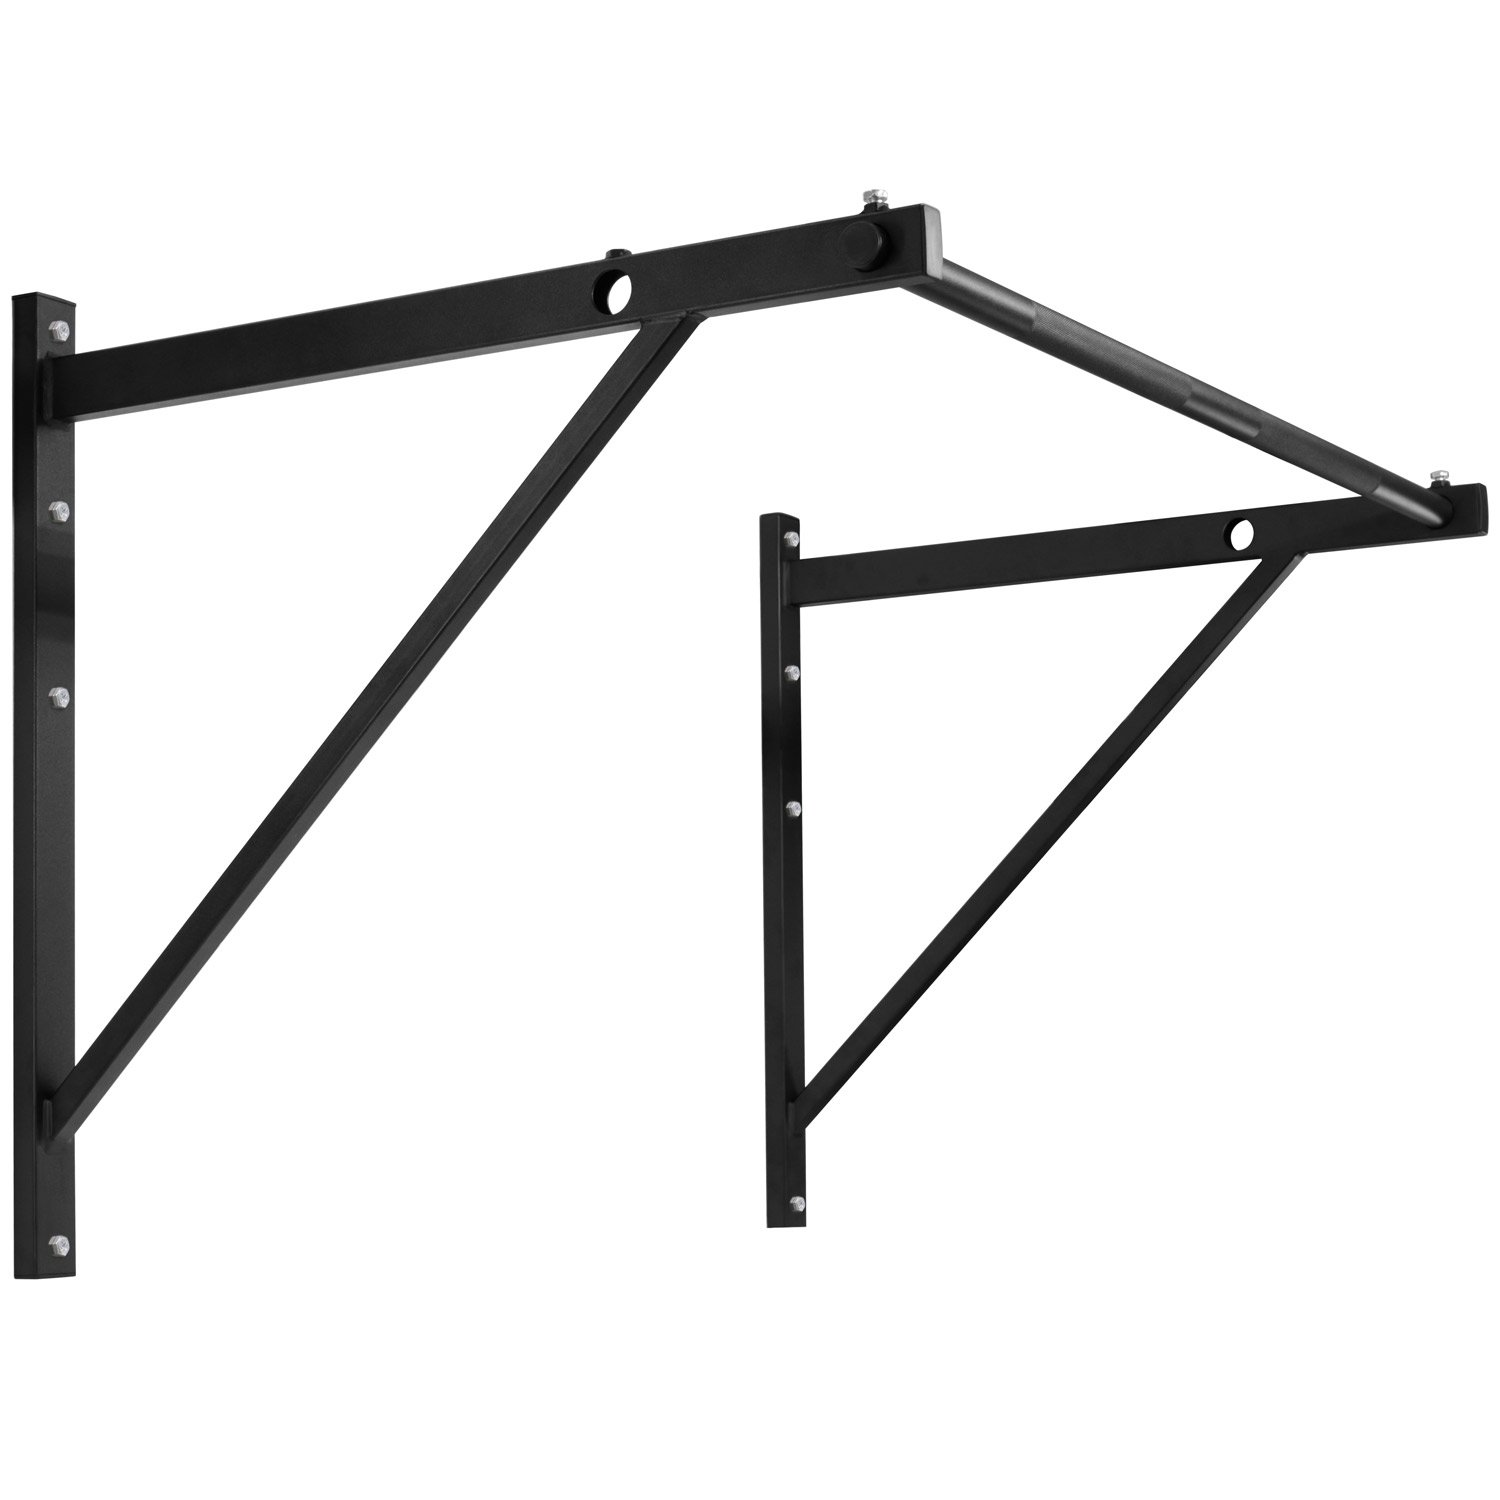 Yes4All Wall Mounted Pull Up Bar for Crossfit Training - Chin Up Bar/Pull Up Bar Wall Mount - Support up to 500 lbs (Black)